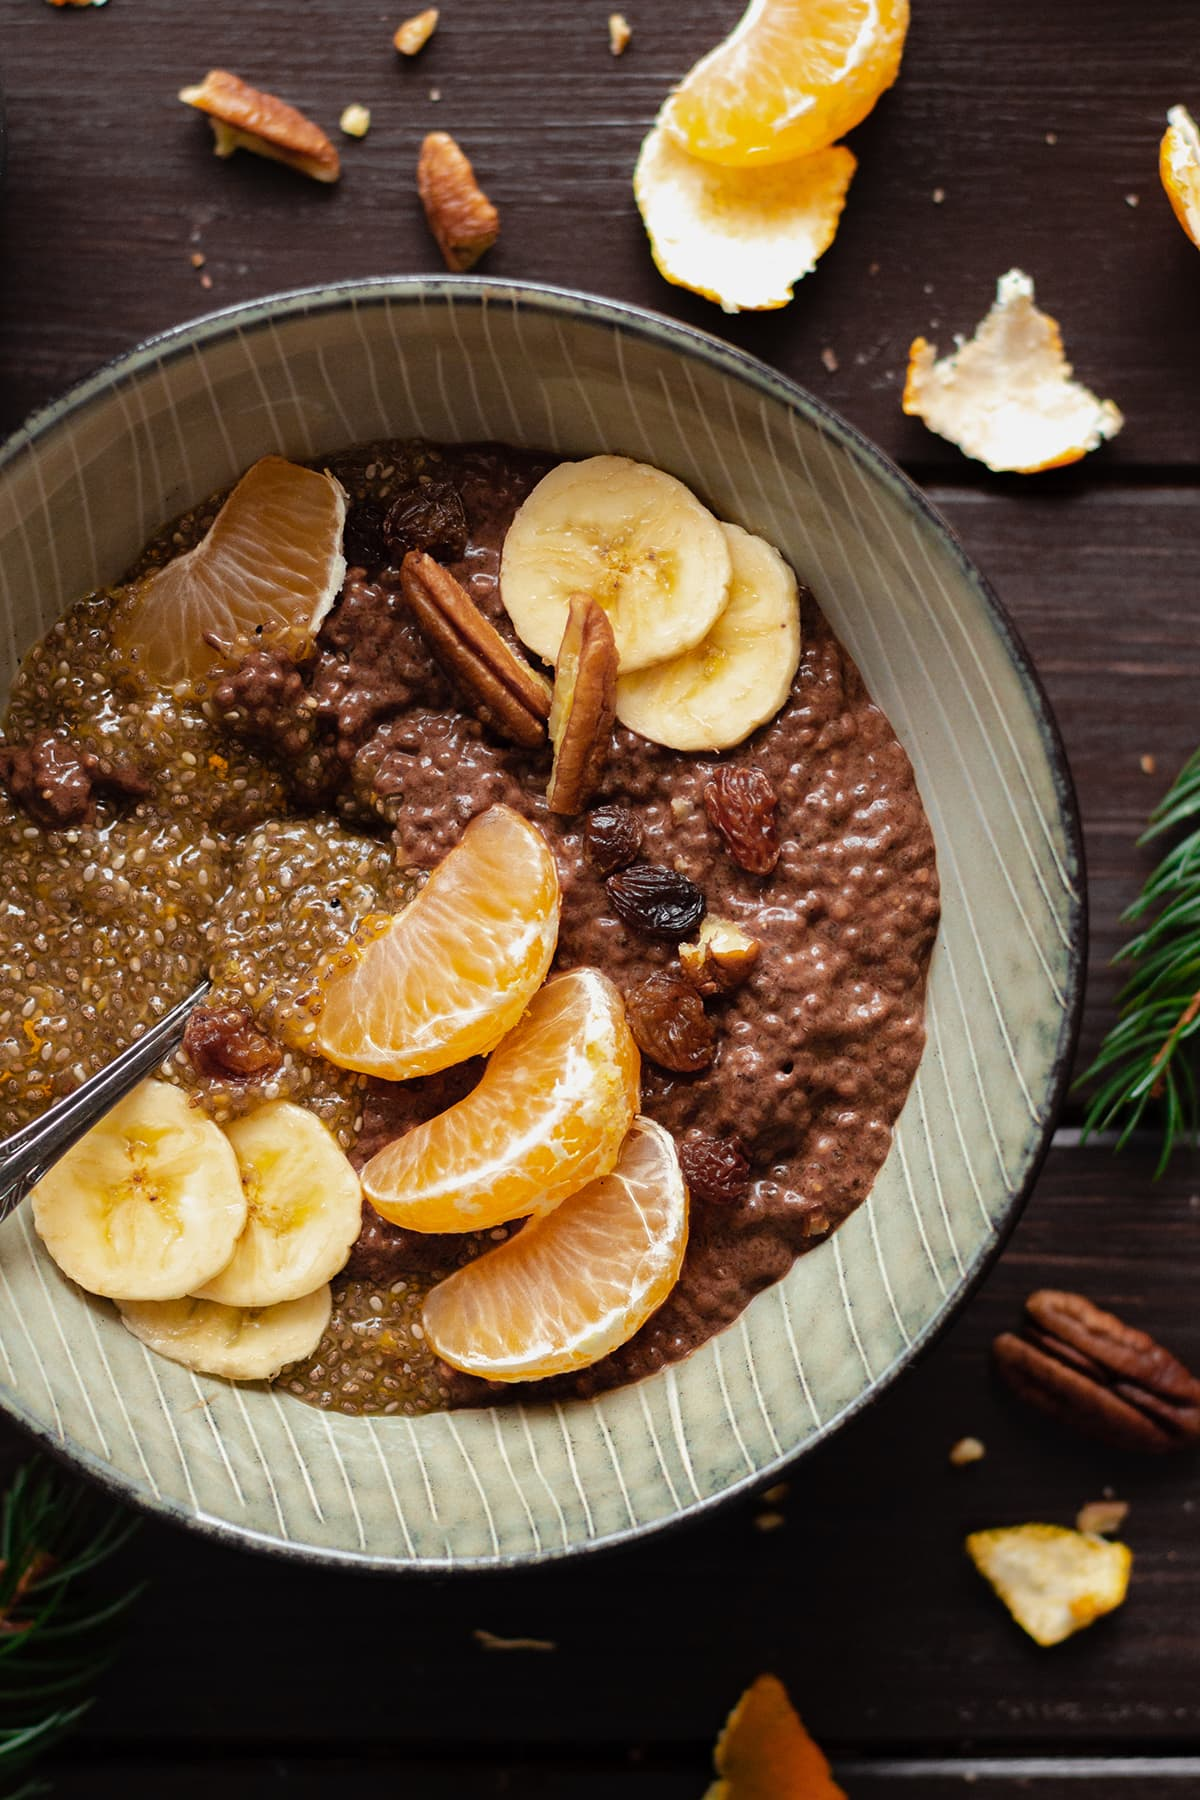 Tangerine Chocolate Chia Pudding in a bowl on a dark wooden table.